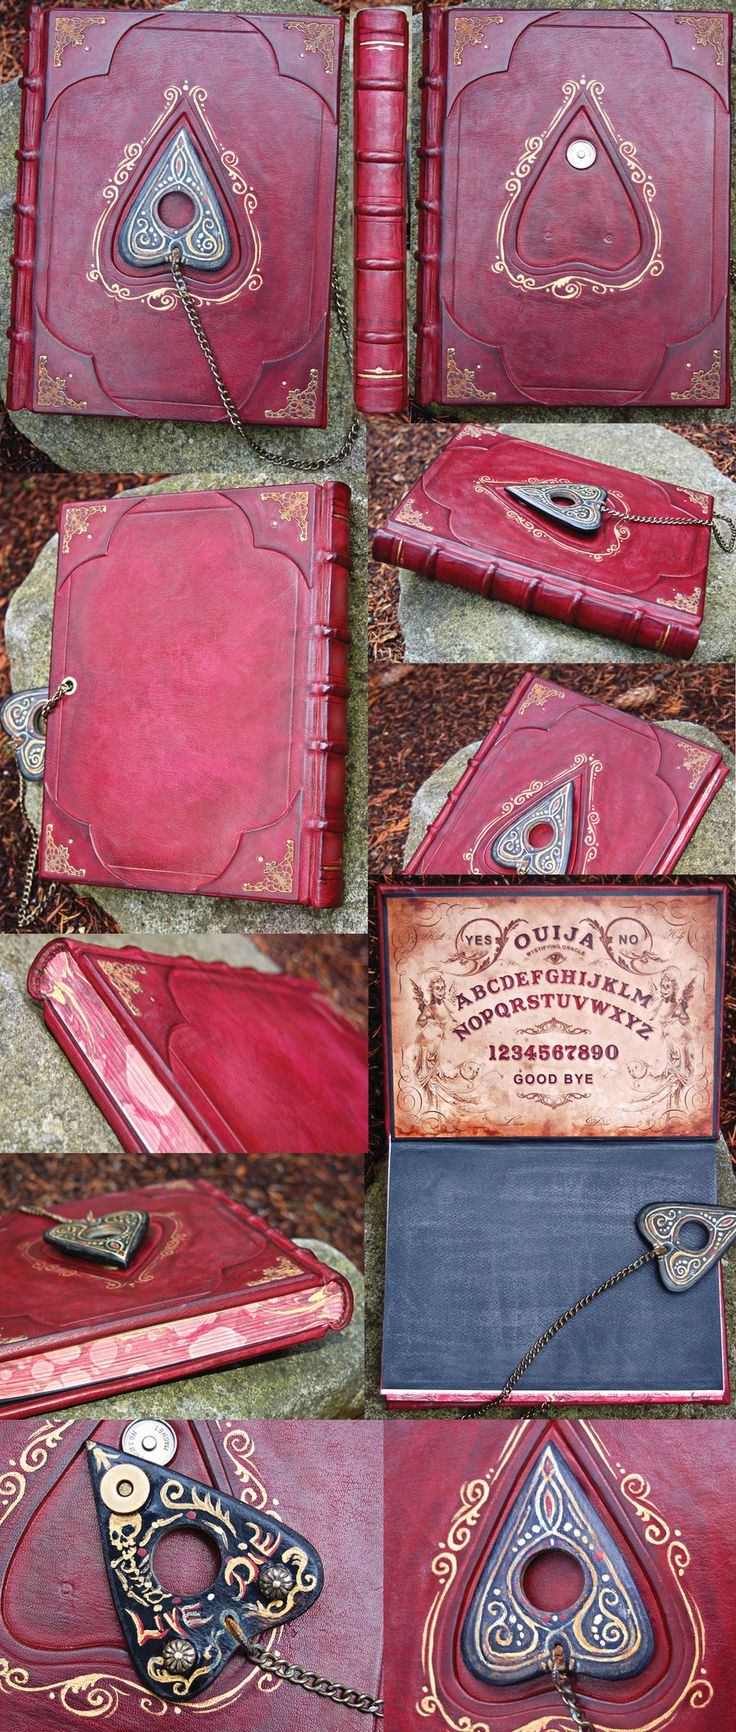 Victorian Ouija Board Spirit Journal. If I find ouija boards at goodwill ill do this for my book of shadows